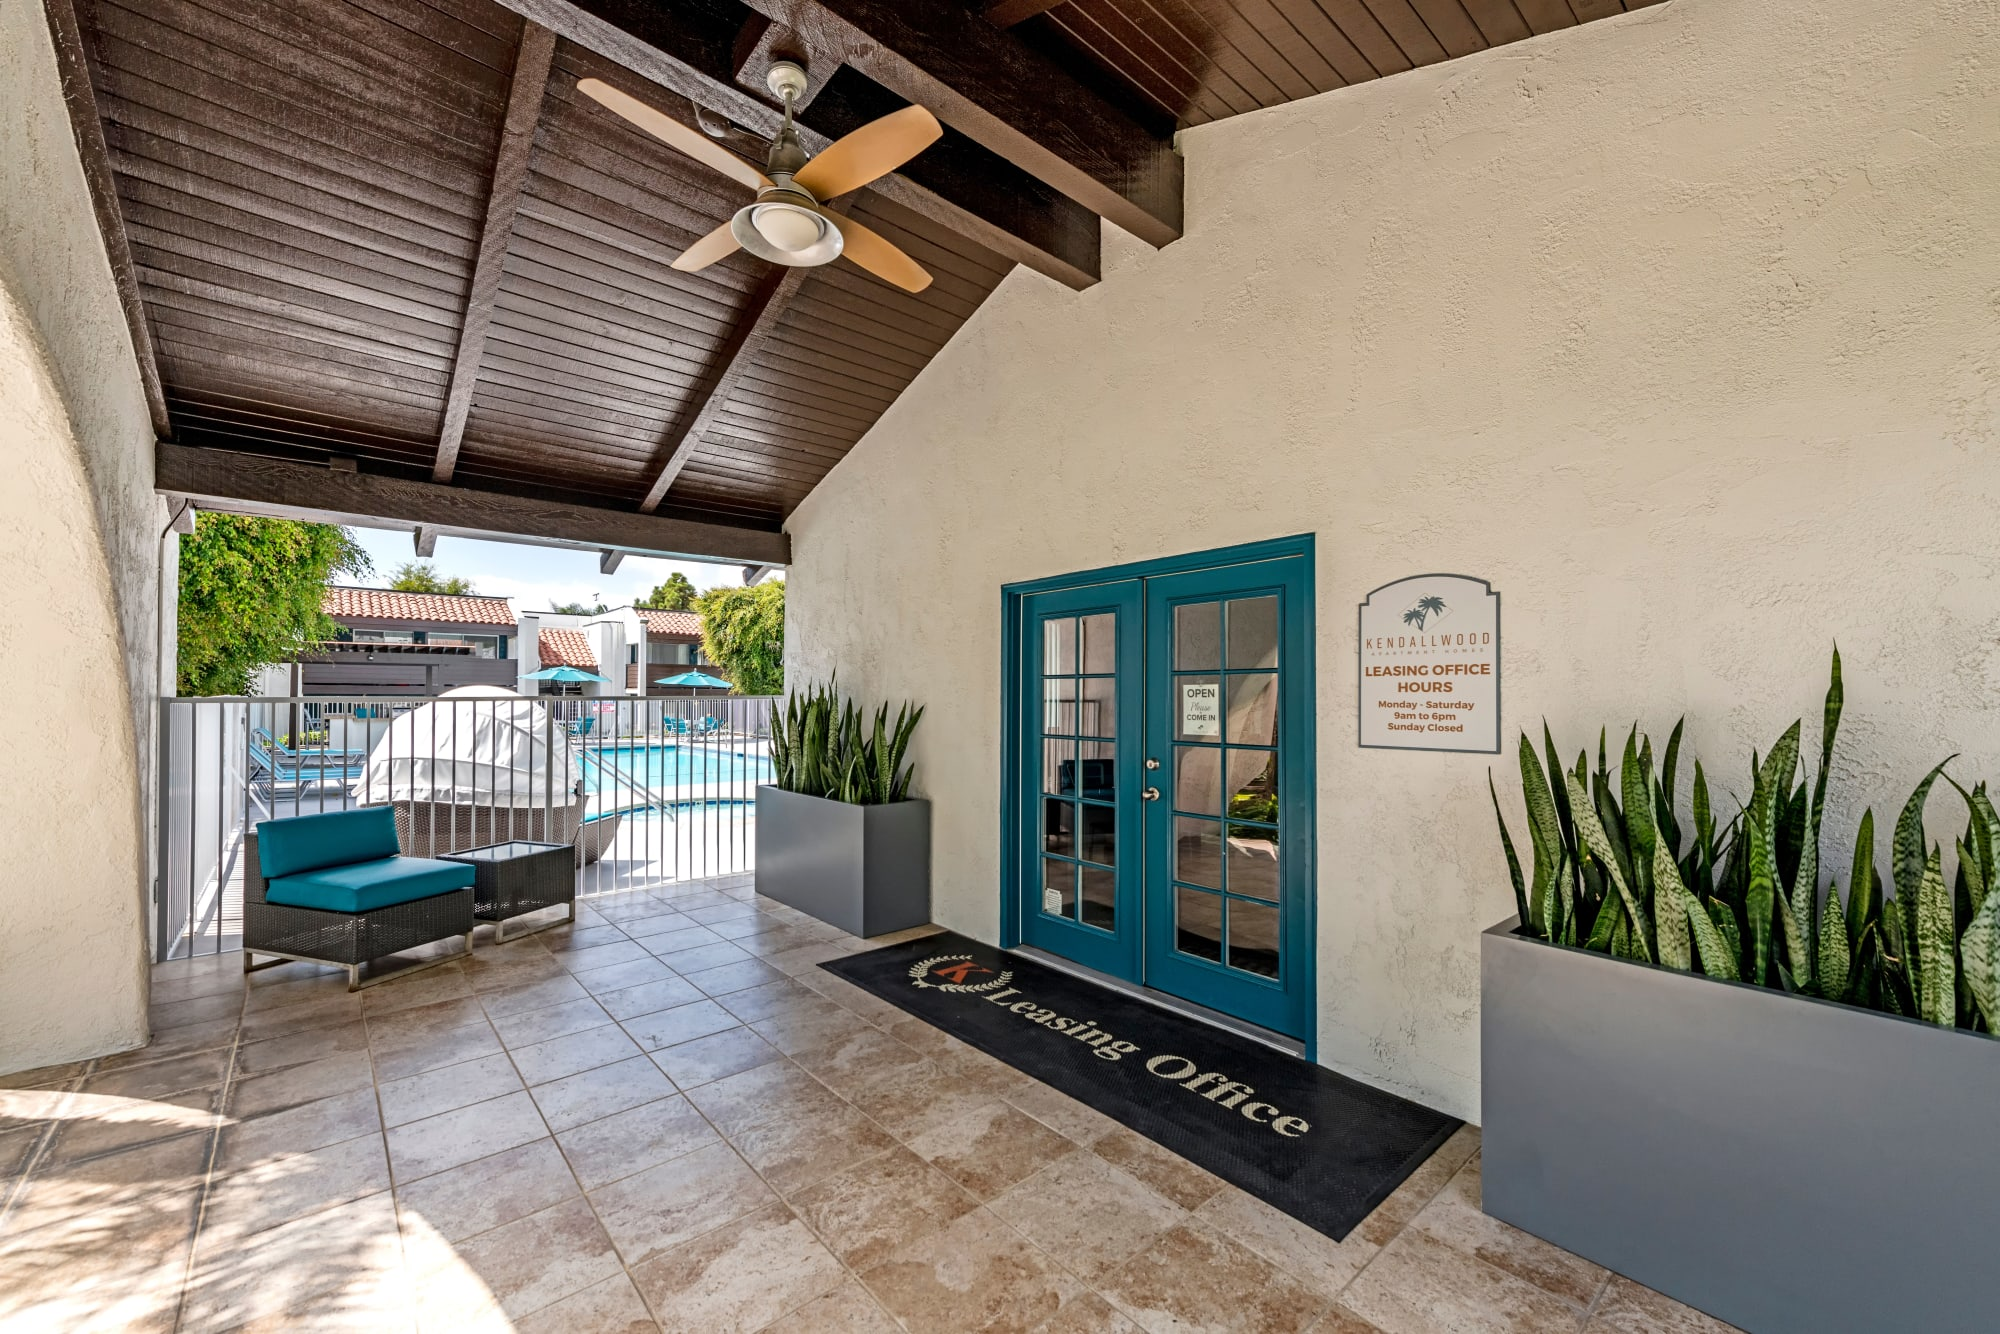 The covered outdoor entry to the leasing office at Kendallwood Apartments in Whittier, California